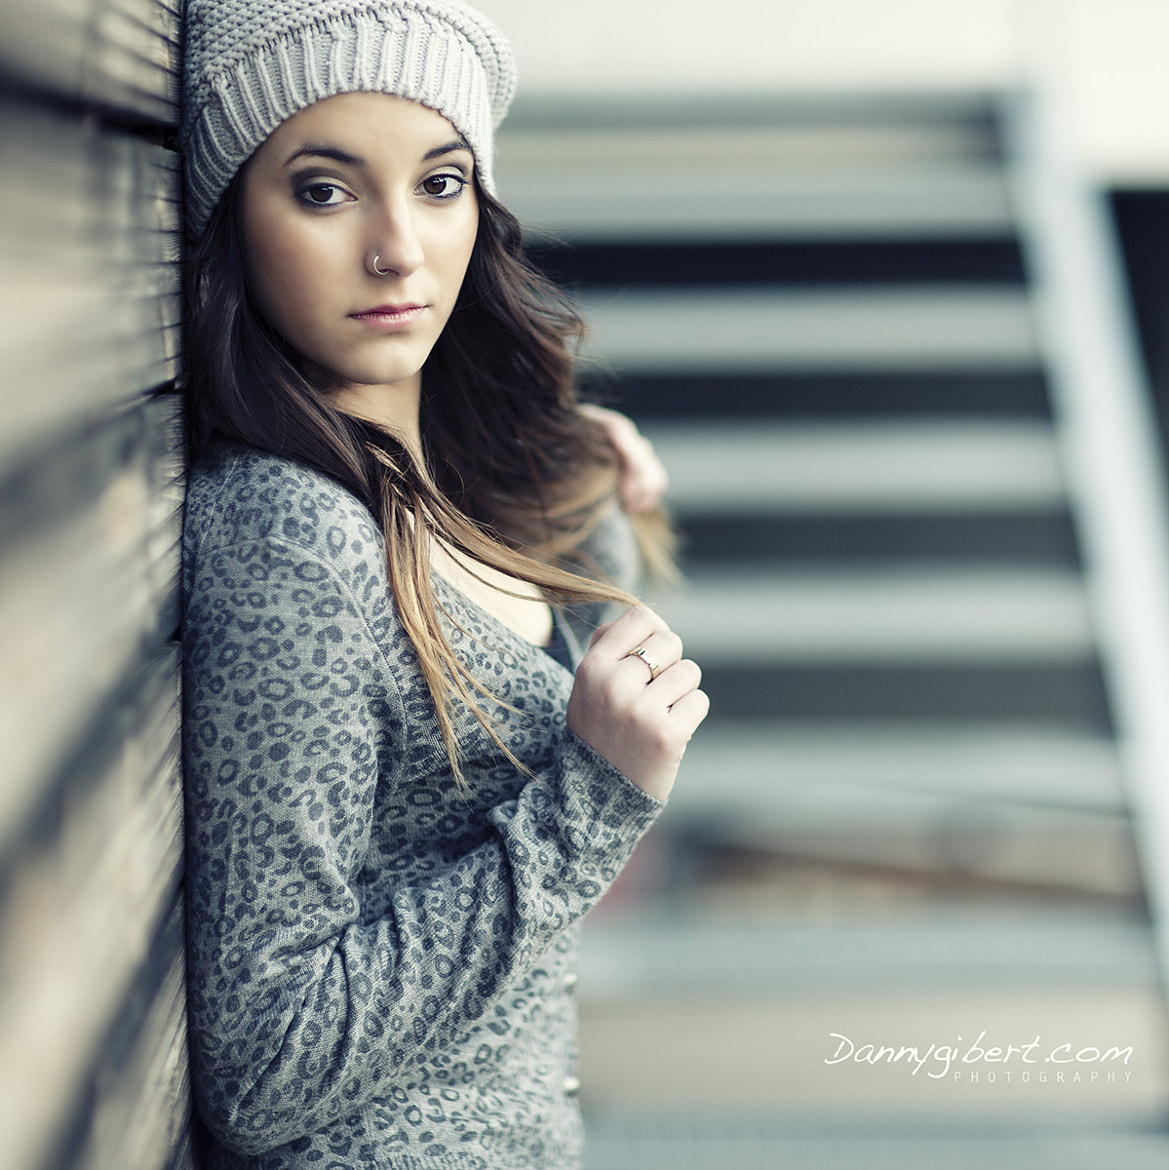 Photograph Teenager by DANNY GIBERT on 500px